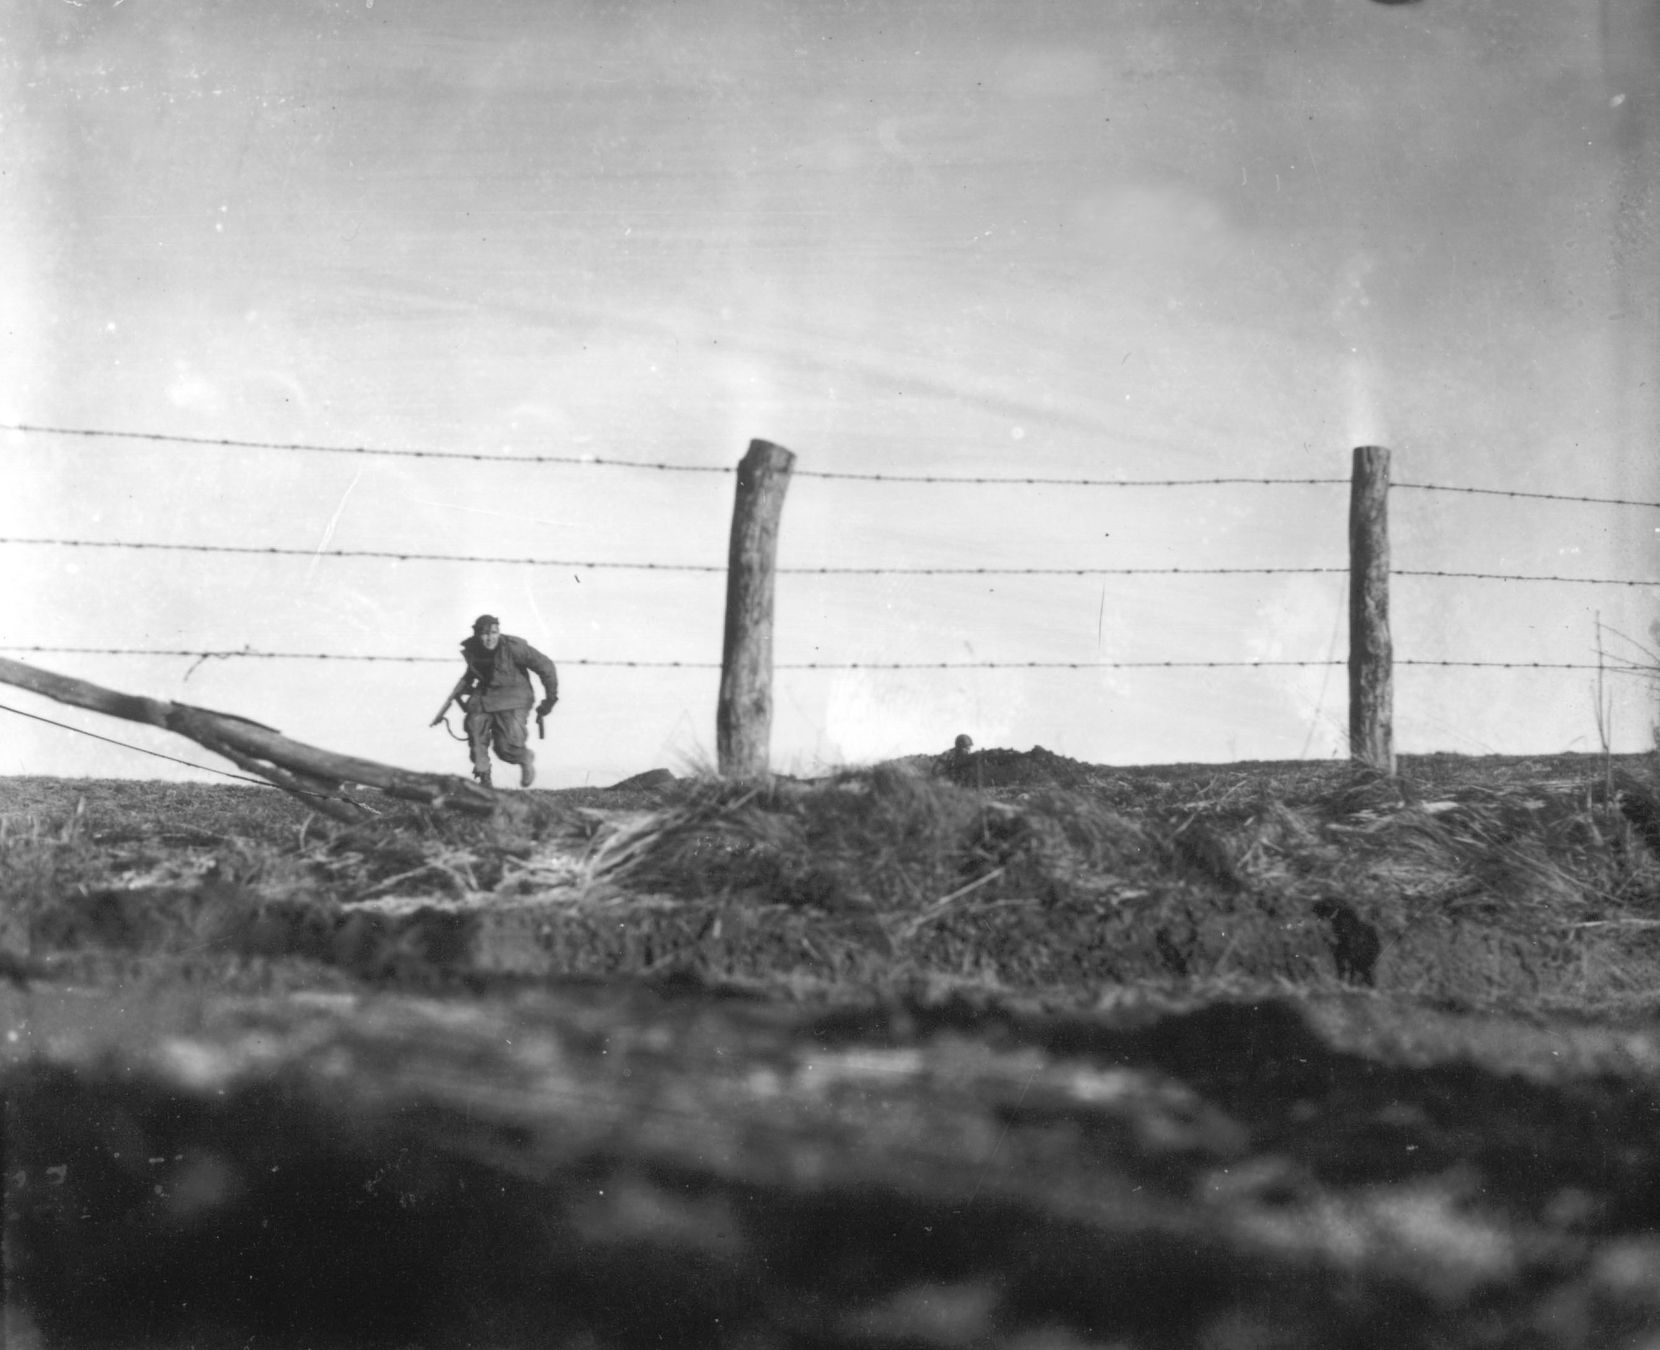 A soldier from the 82nd Airborne Division goes out on a one-man sortie while covered by a comrade in the background, near Bra, Belgium, on December 24, 1944.